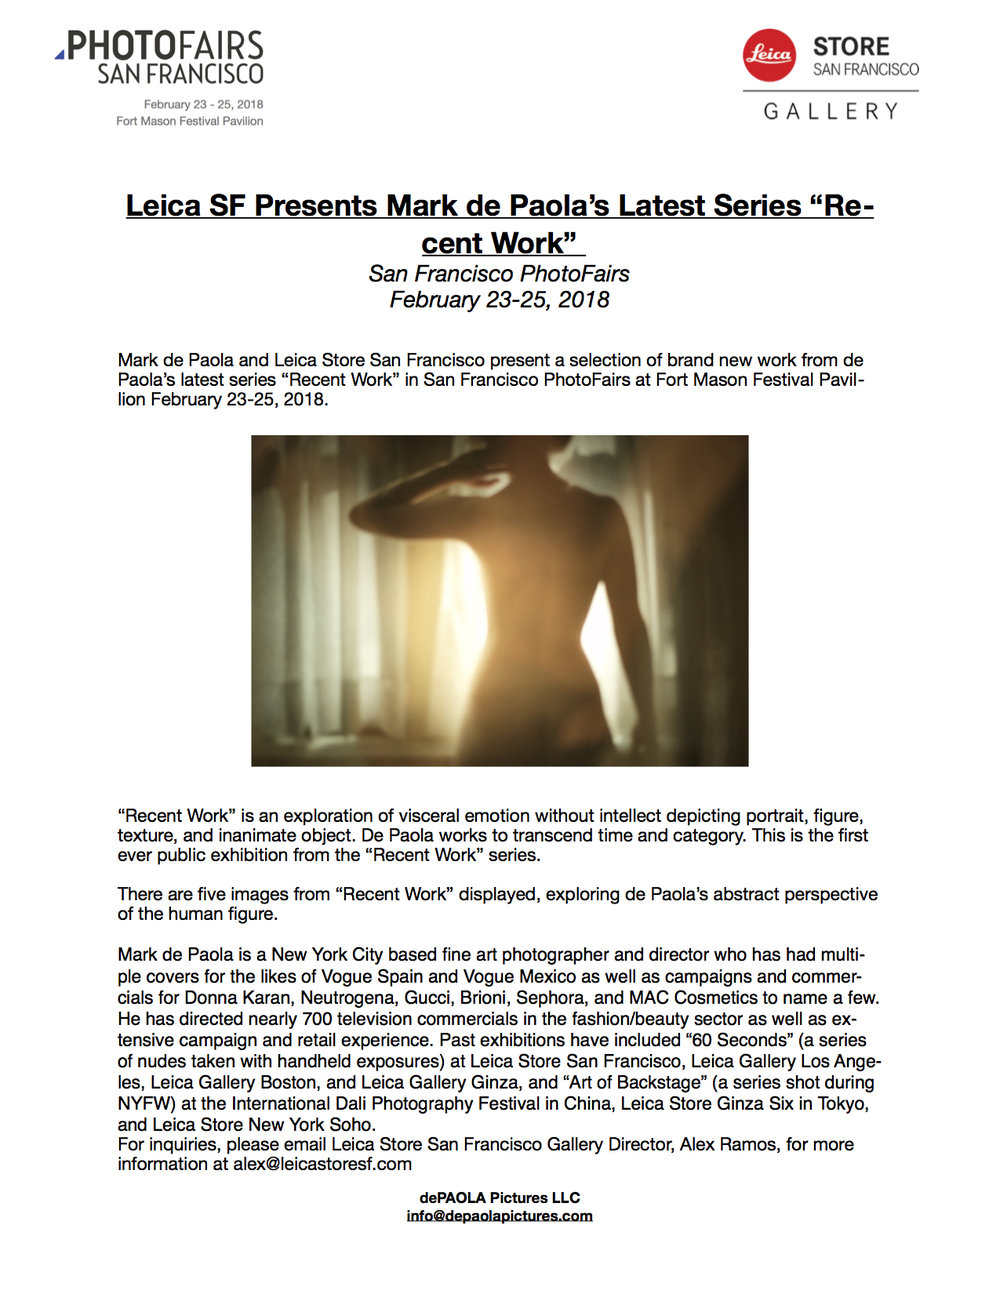 SF PhotoFairs Recent Work Press Release.jpg